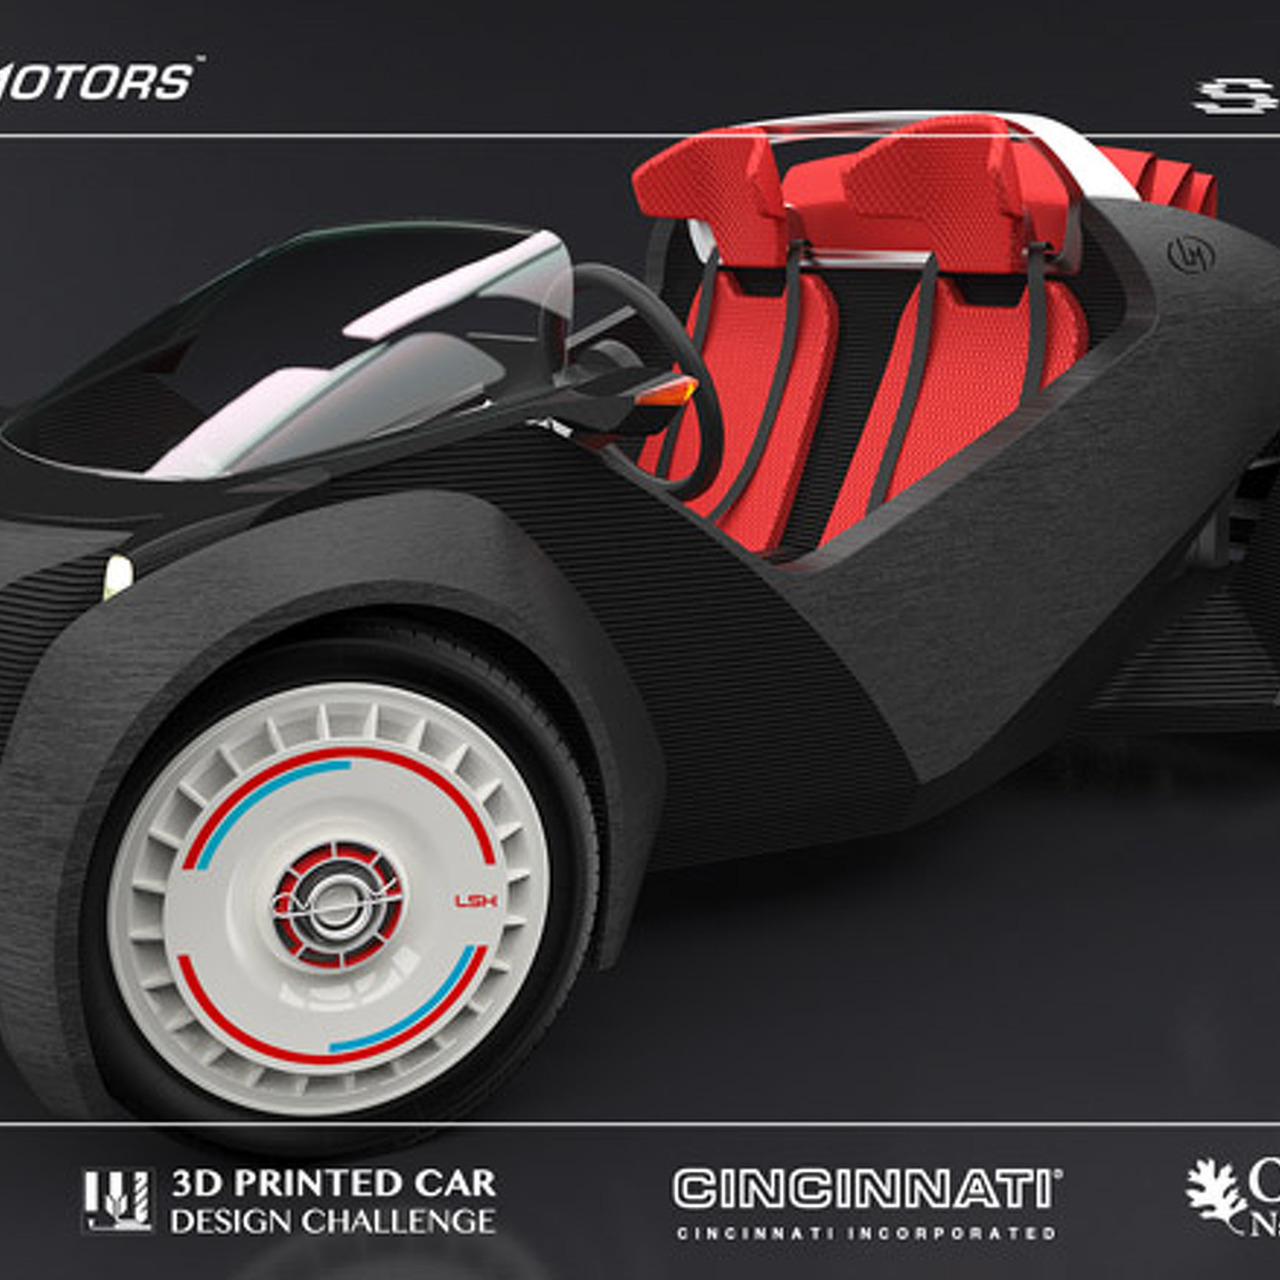 World's First 3D Printed Car Drove Off This Weekend [w/Video]